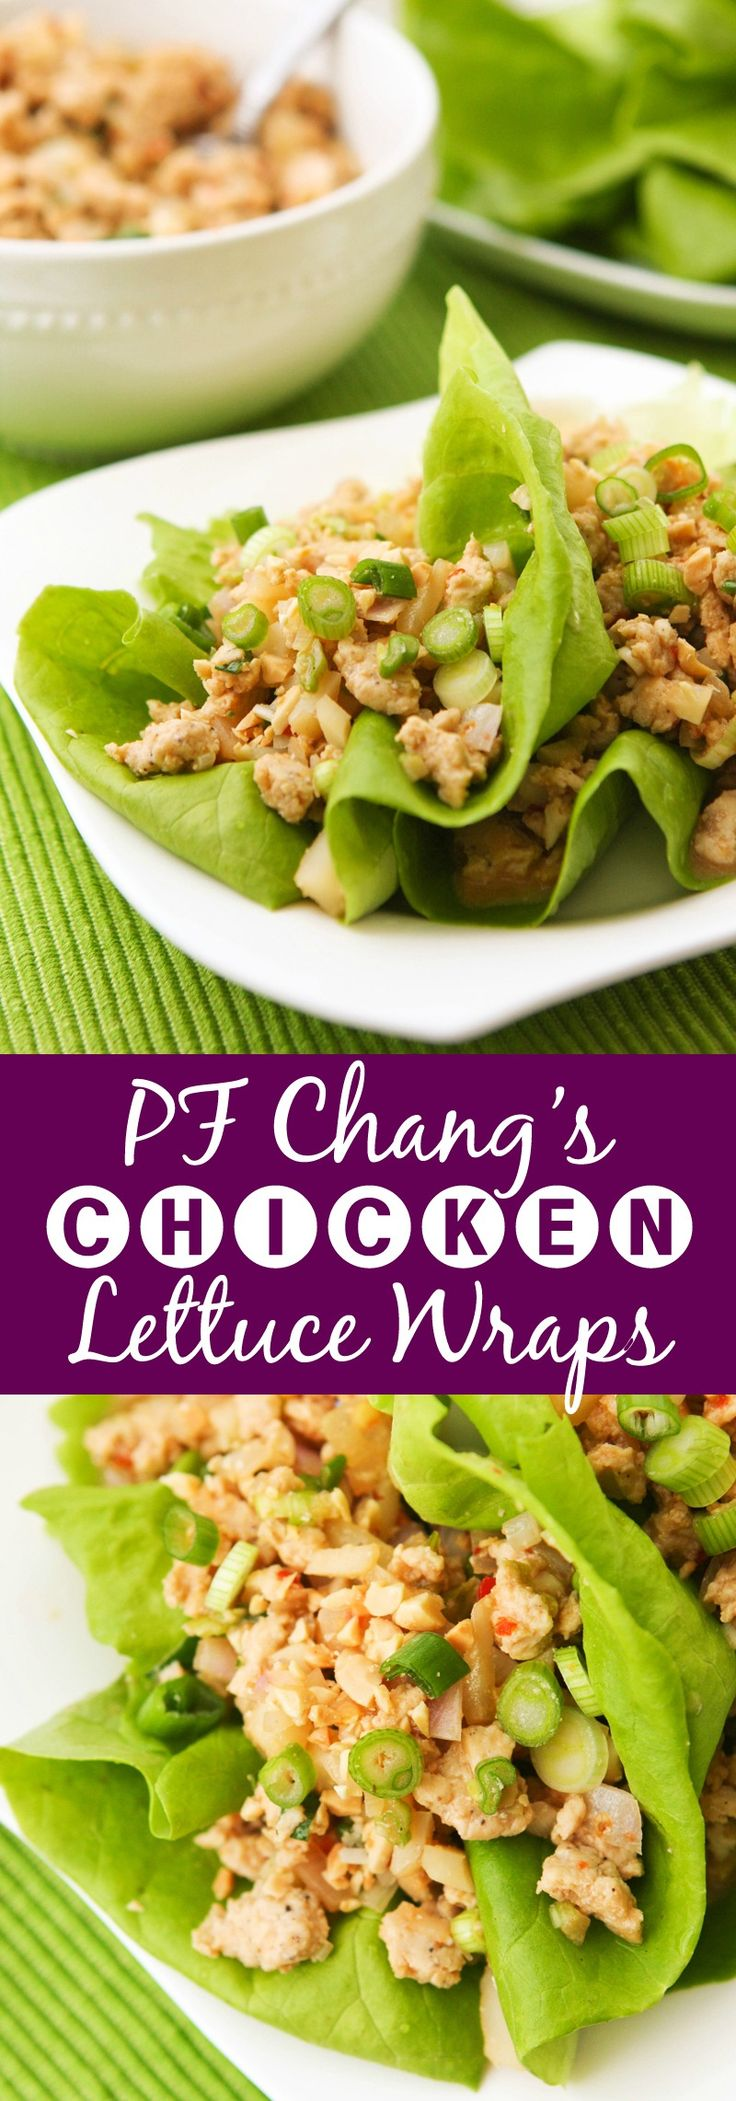 Slim and Delicious Chicken Lettuce Wraps | A healthy version of the famous P.F. Changs chicken lettuce wraps. It tastes just as good, if not better!